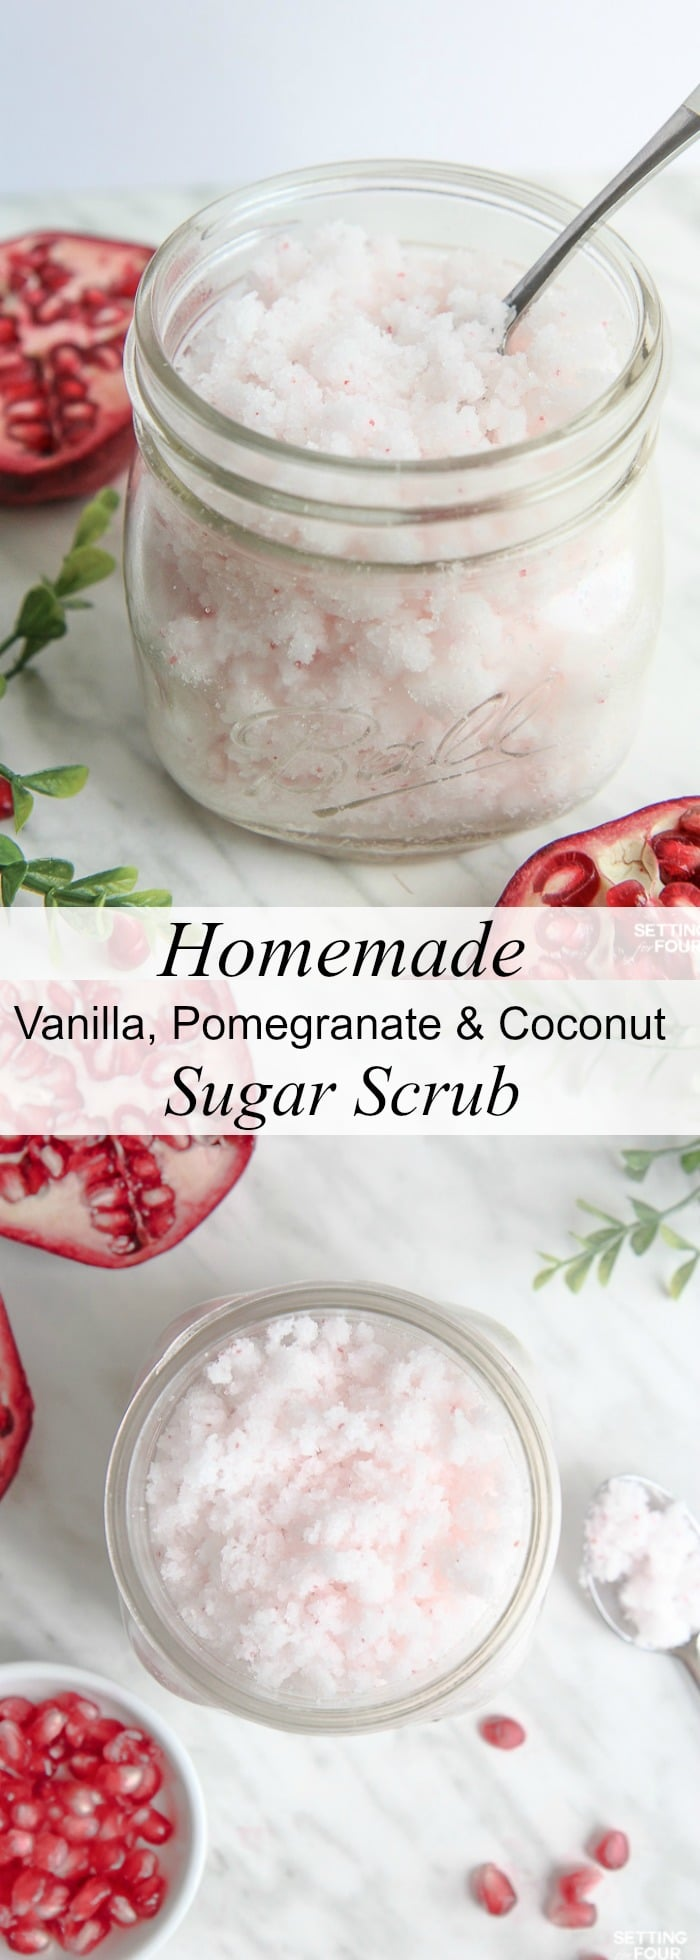 This DIY Vanilla, Pomegranate and Coconut Sugar Scrub Recipe is quick to make and smells amazing Great homemade gift idea! Rich, moisturizing coconut oil mixed with exfoliating sugar not only feels fabulous but gets rid of flaky skin in a jiffy! Click to see the ingredients and directions to make this easy DIY sugar scrub!